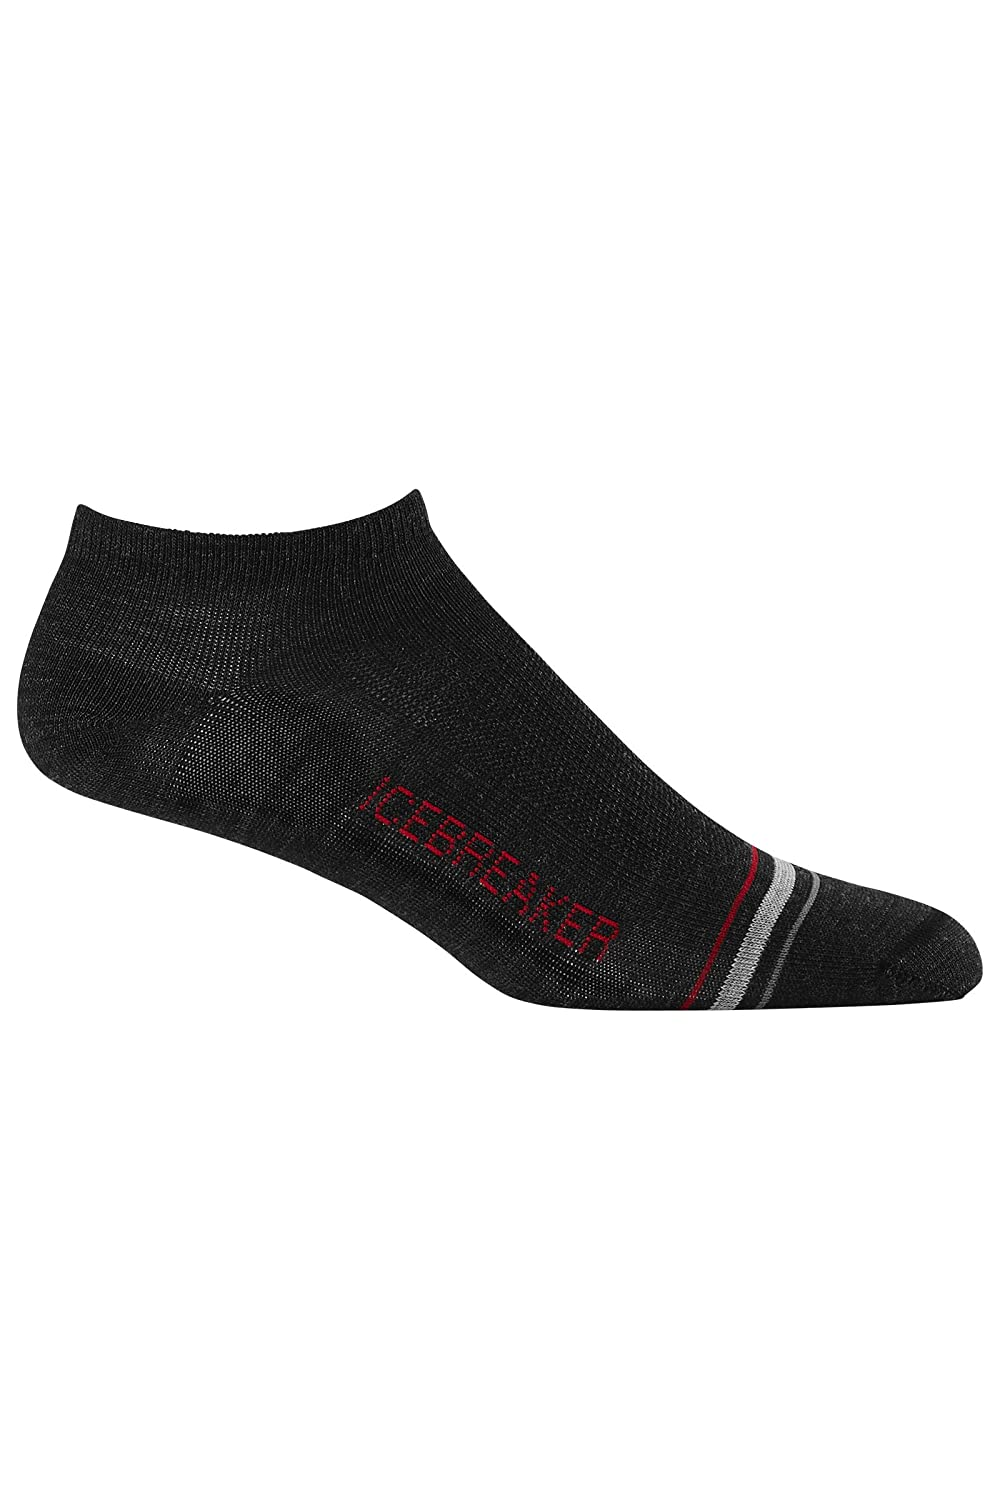 /Calcetines para Hombre Lifestyle Ultra Light Low Cut Icebreaker/